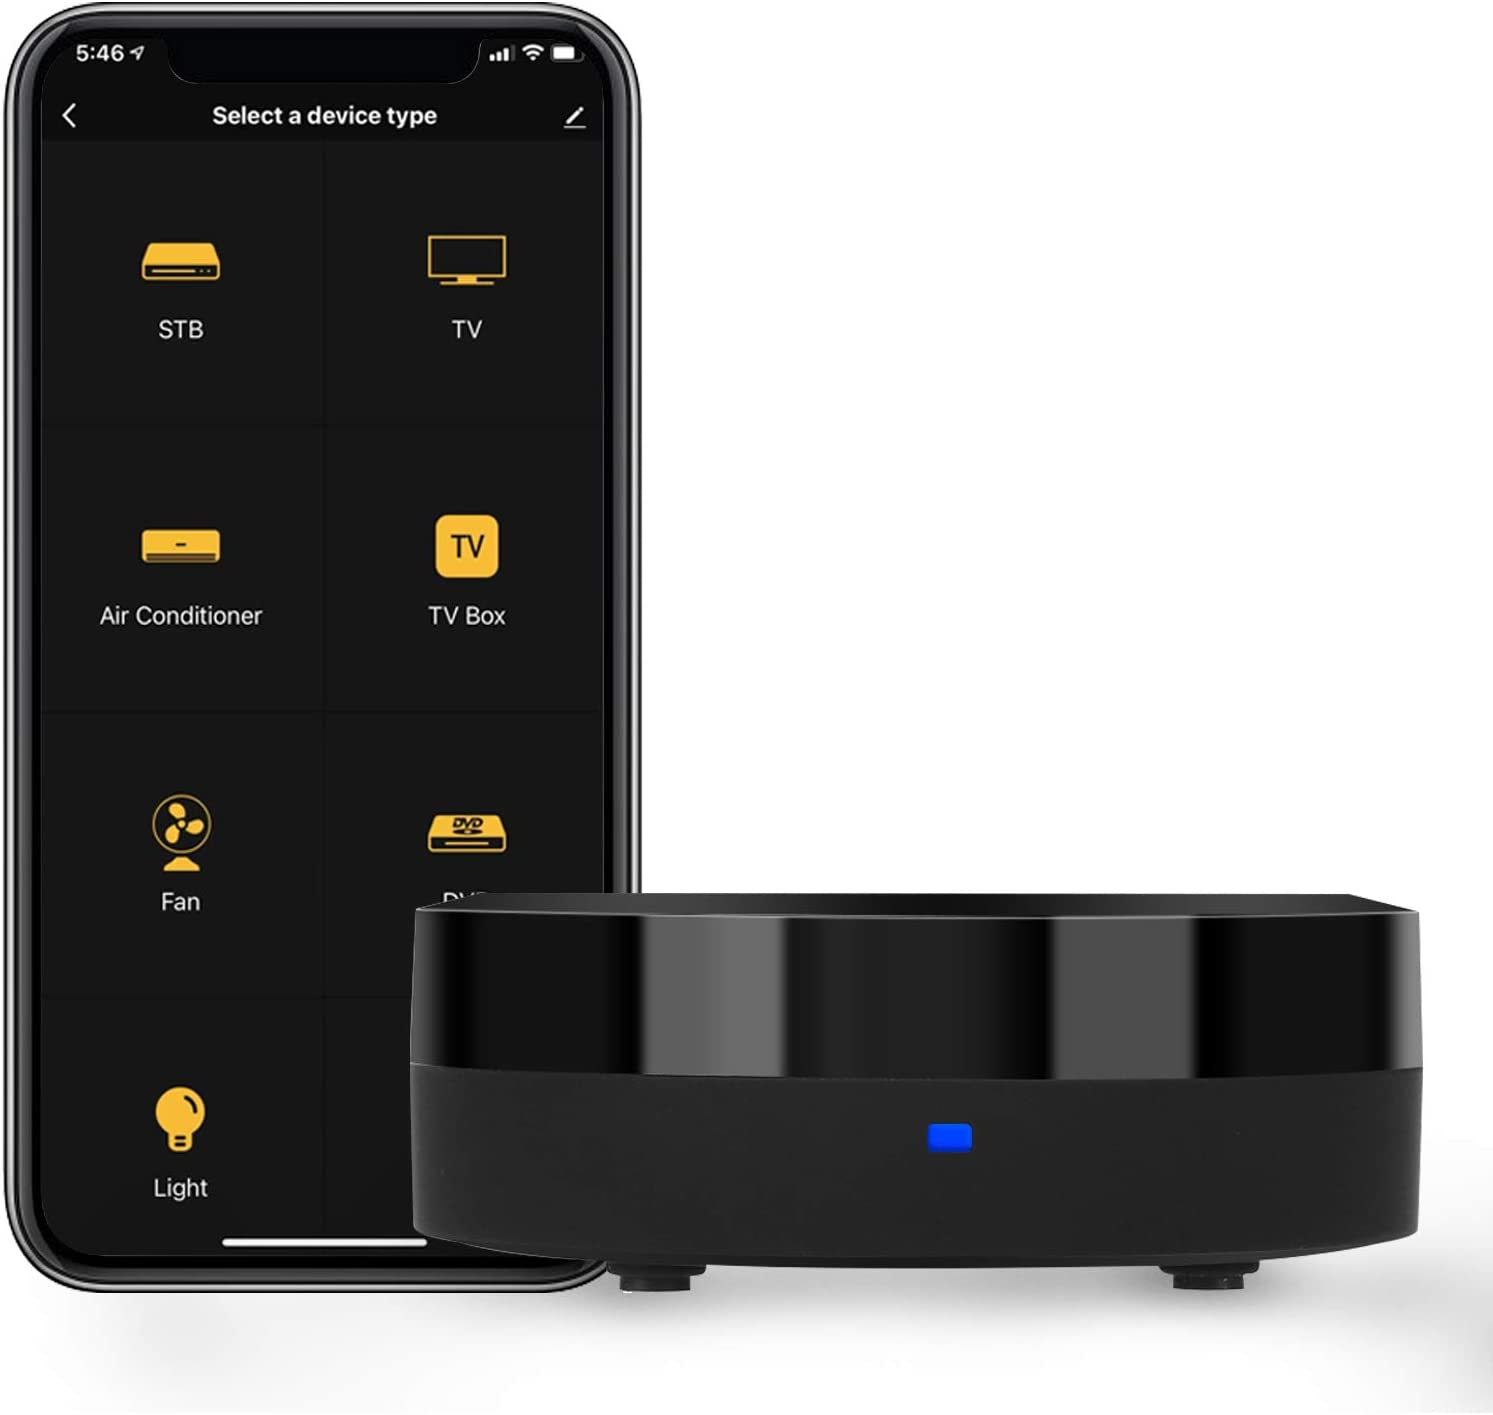 IVY Smart Home Phone Hub-WiFi Universal Remote Control IR Blaster for TV Projector Air Conditioner Fan etc,All IR Control Device,Compatible with Alexa, Google Home, HomePod, IFTTT